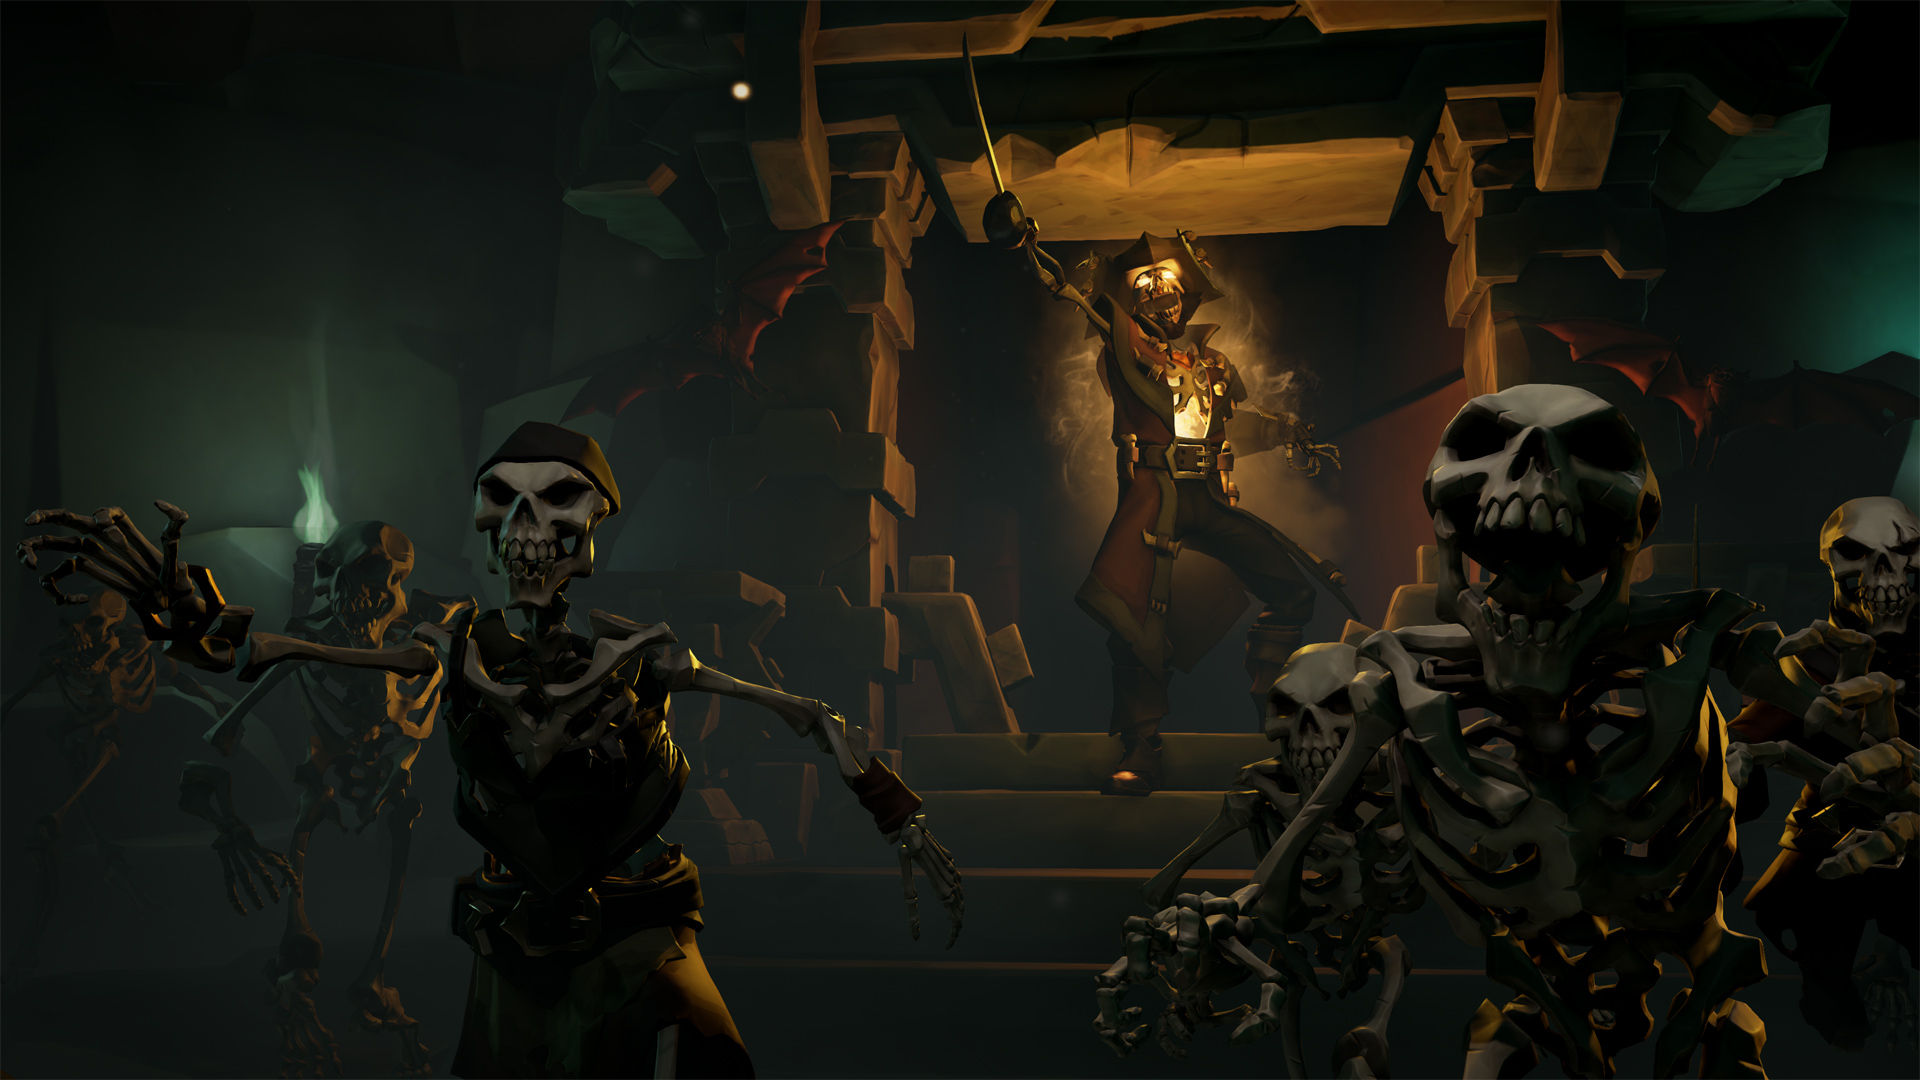 Acted as Principal Artist:  created all lighting, animation, cinematography, VFX, using Rare's base assets for their upcoming game Sea of Thieves. Created in Unreal Engine 4.